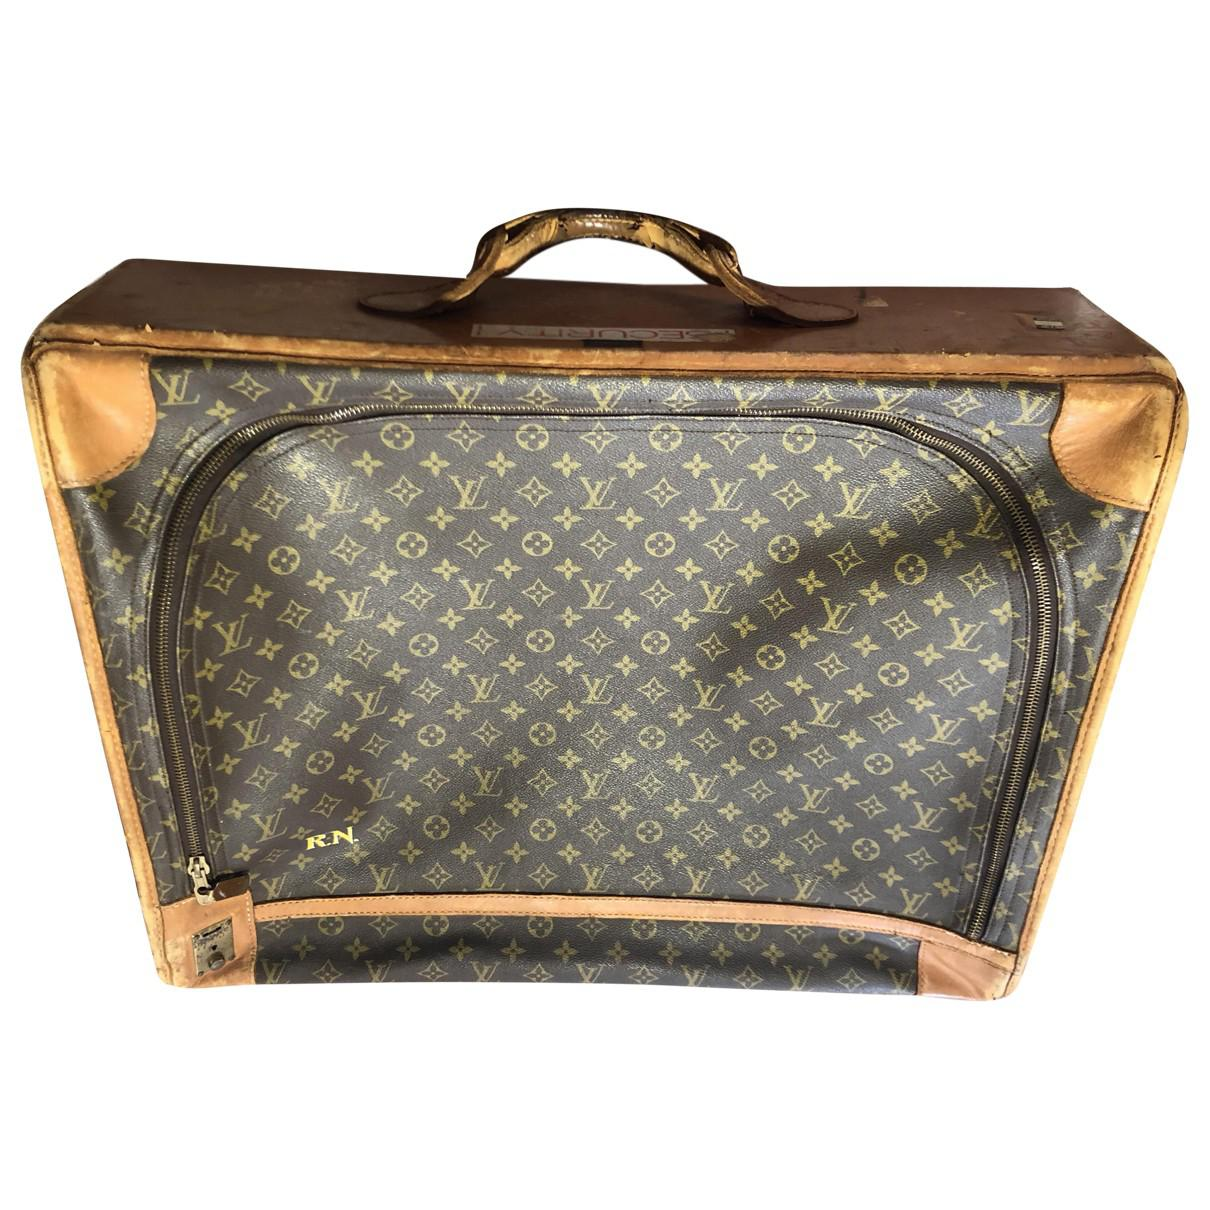 Pre-owned - Leather 24h bag Louis Vuitton Fw5kNo4